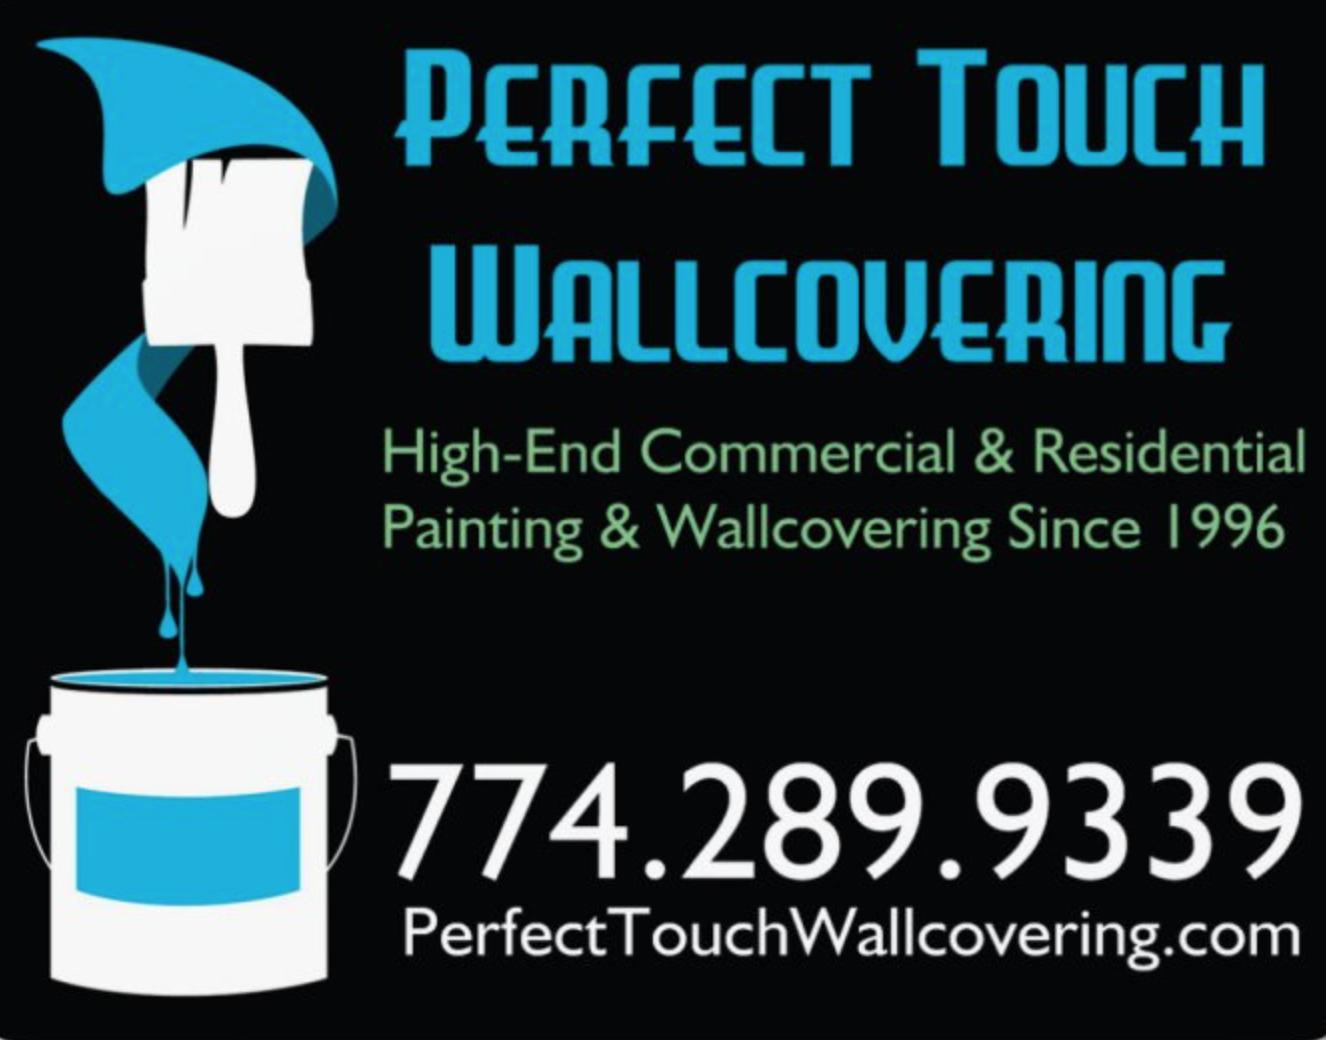 Perfect Touch Wallcovering